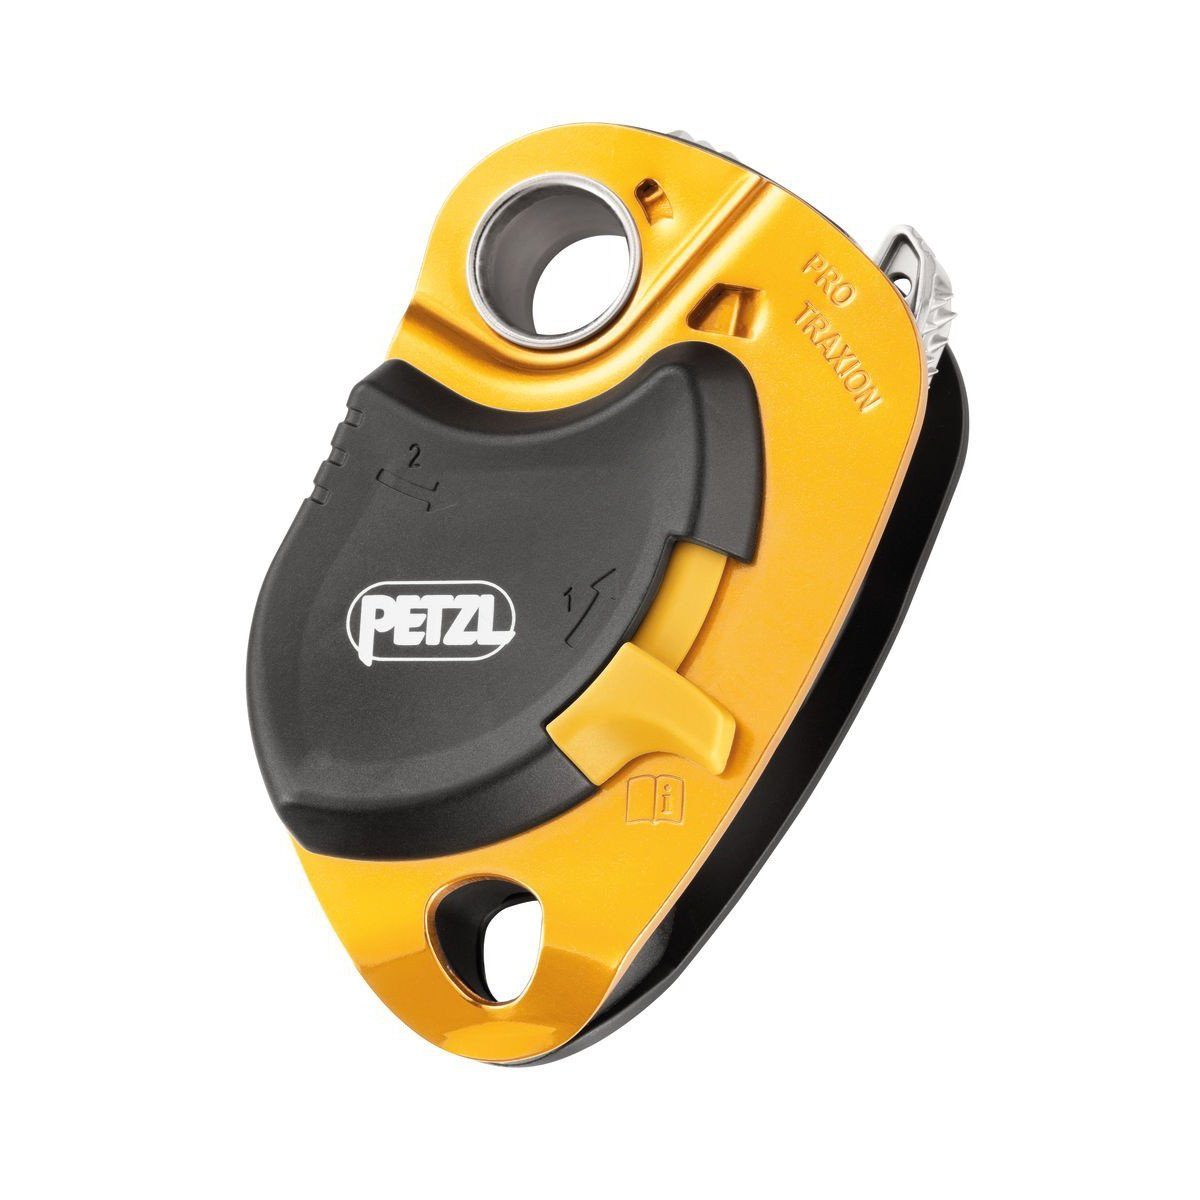 Petzl Pro Traxion pulley, front/side view in gold and black colours